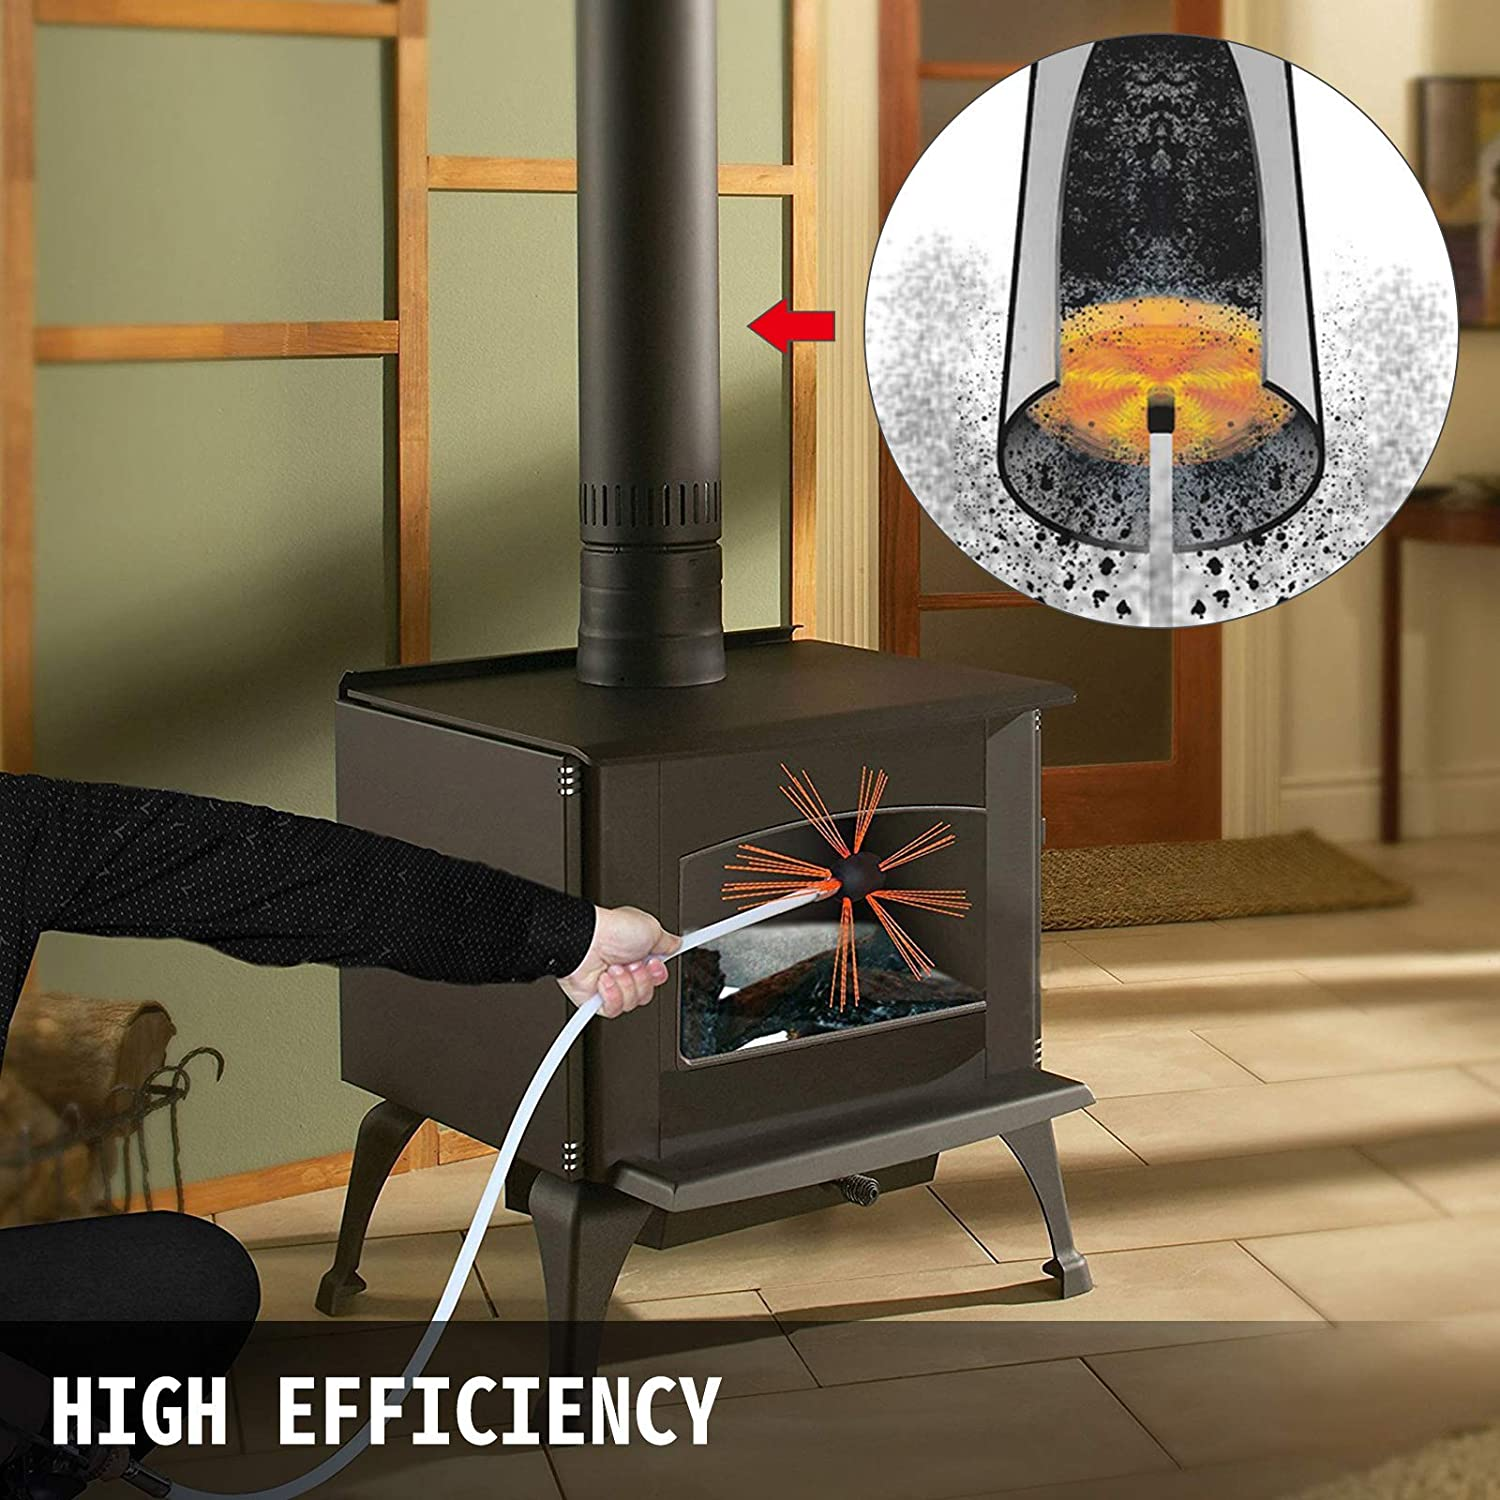 Rotary Chimney Cleaning Kit Driven by Drill VEVOR Chimney Sweep Kit 36FT Length Chimney Brush Kit with 11 Nylon Flexible Rods